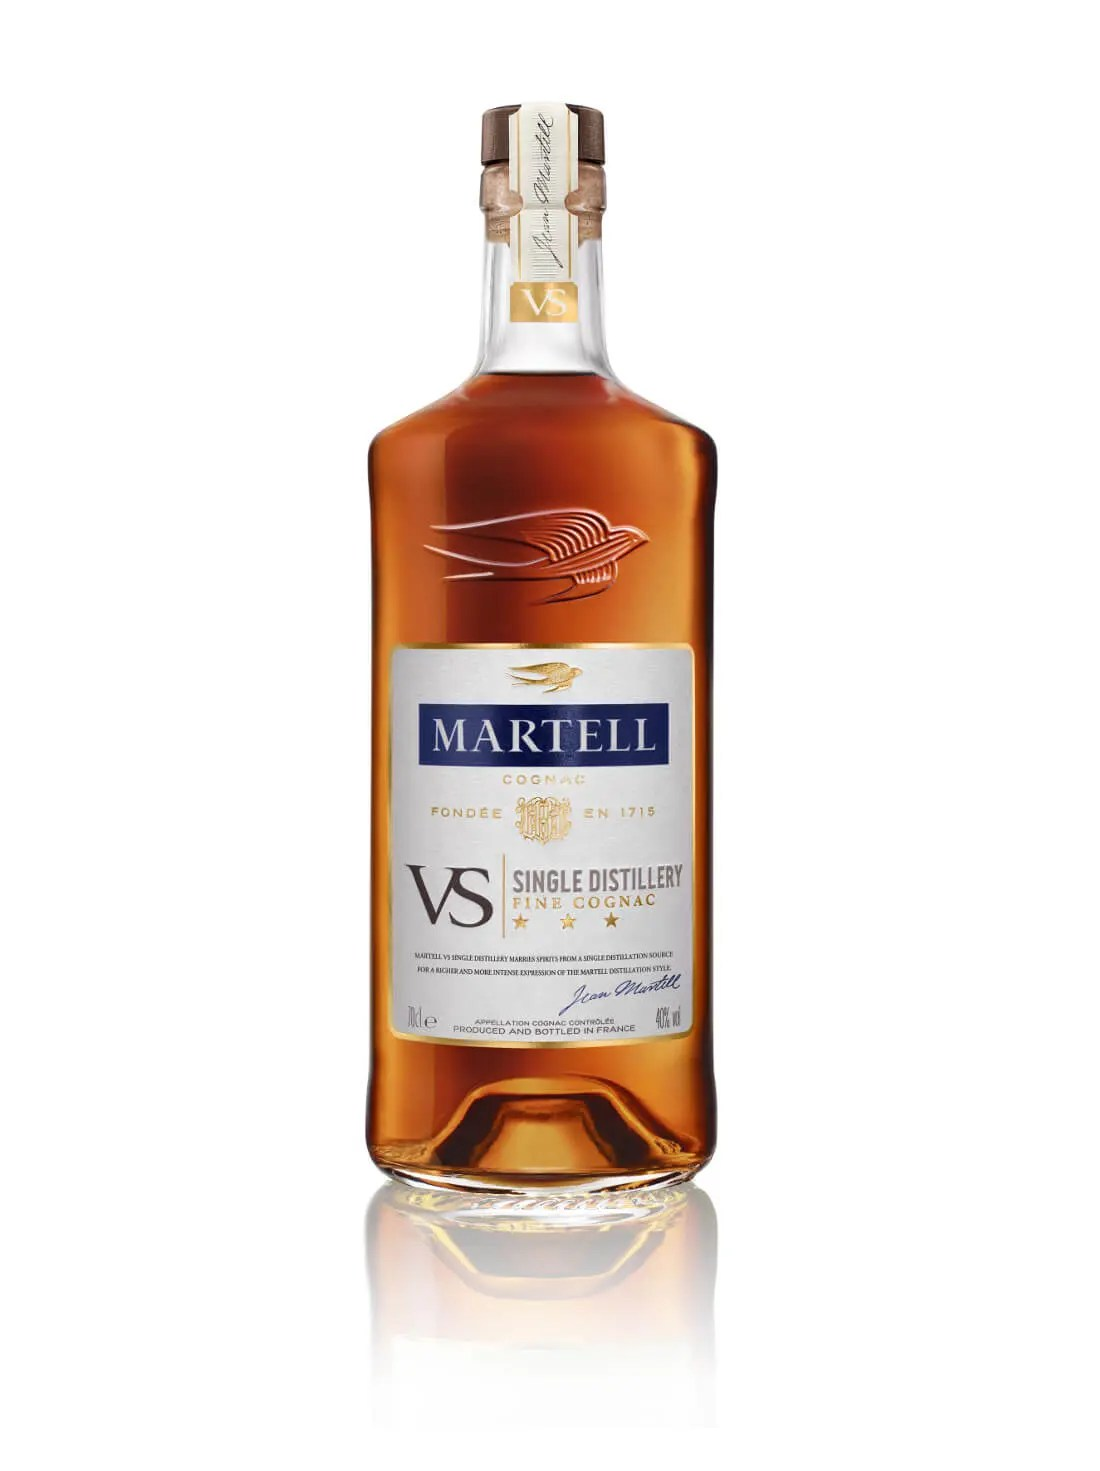 martell-vs-single-distillery-bottle-front-70cl-white-backg-low-res